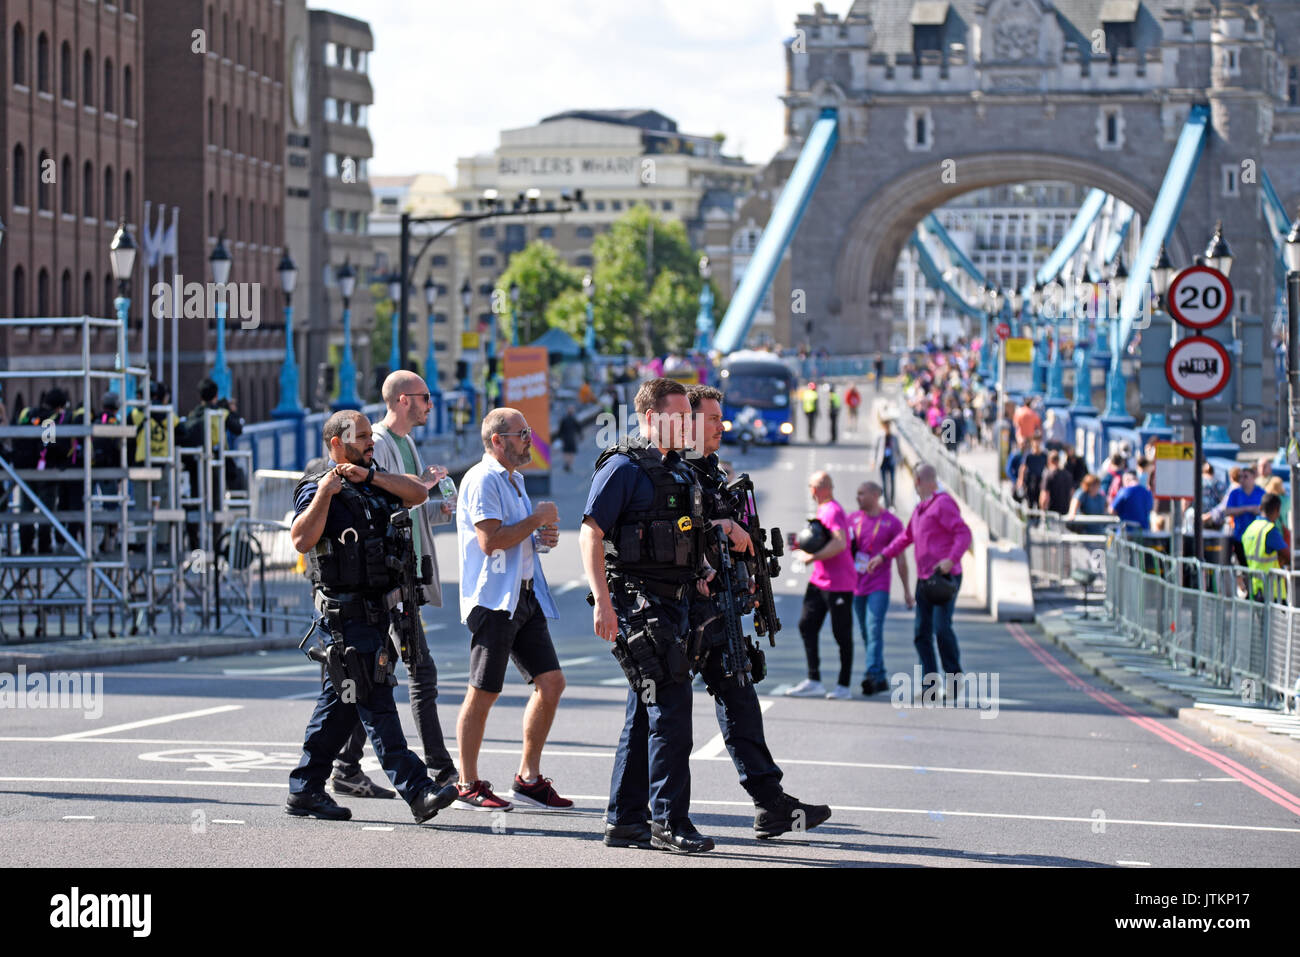 Armed police cross the road close to the start of the World Athletics Championships Marathon whilst final preparations are made. Tower Bridge, London - Stock Image